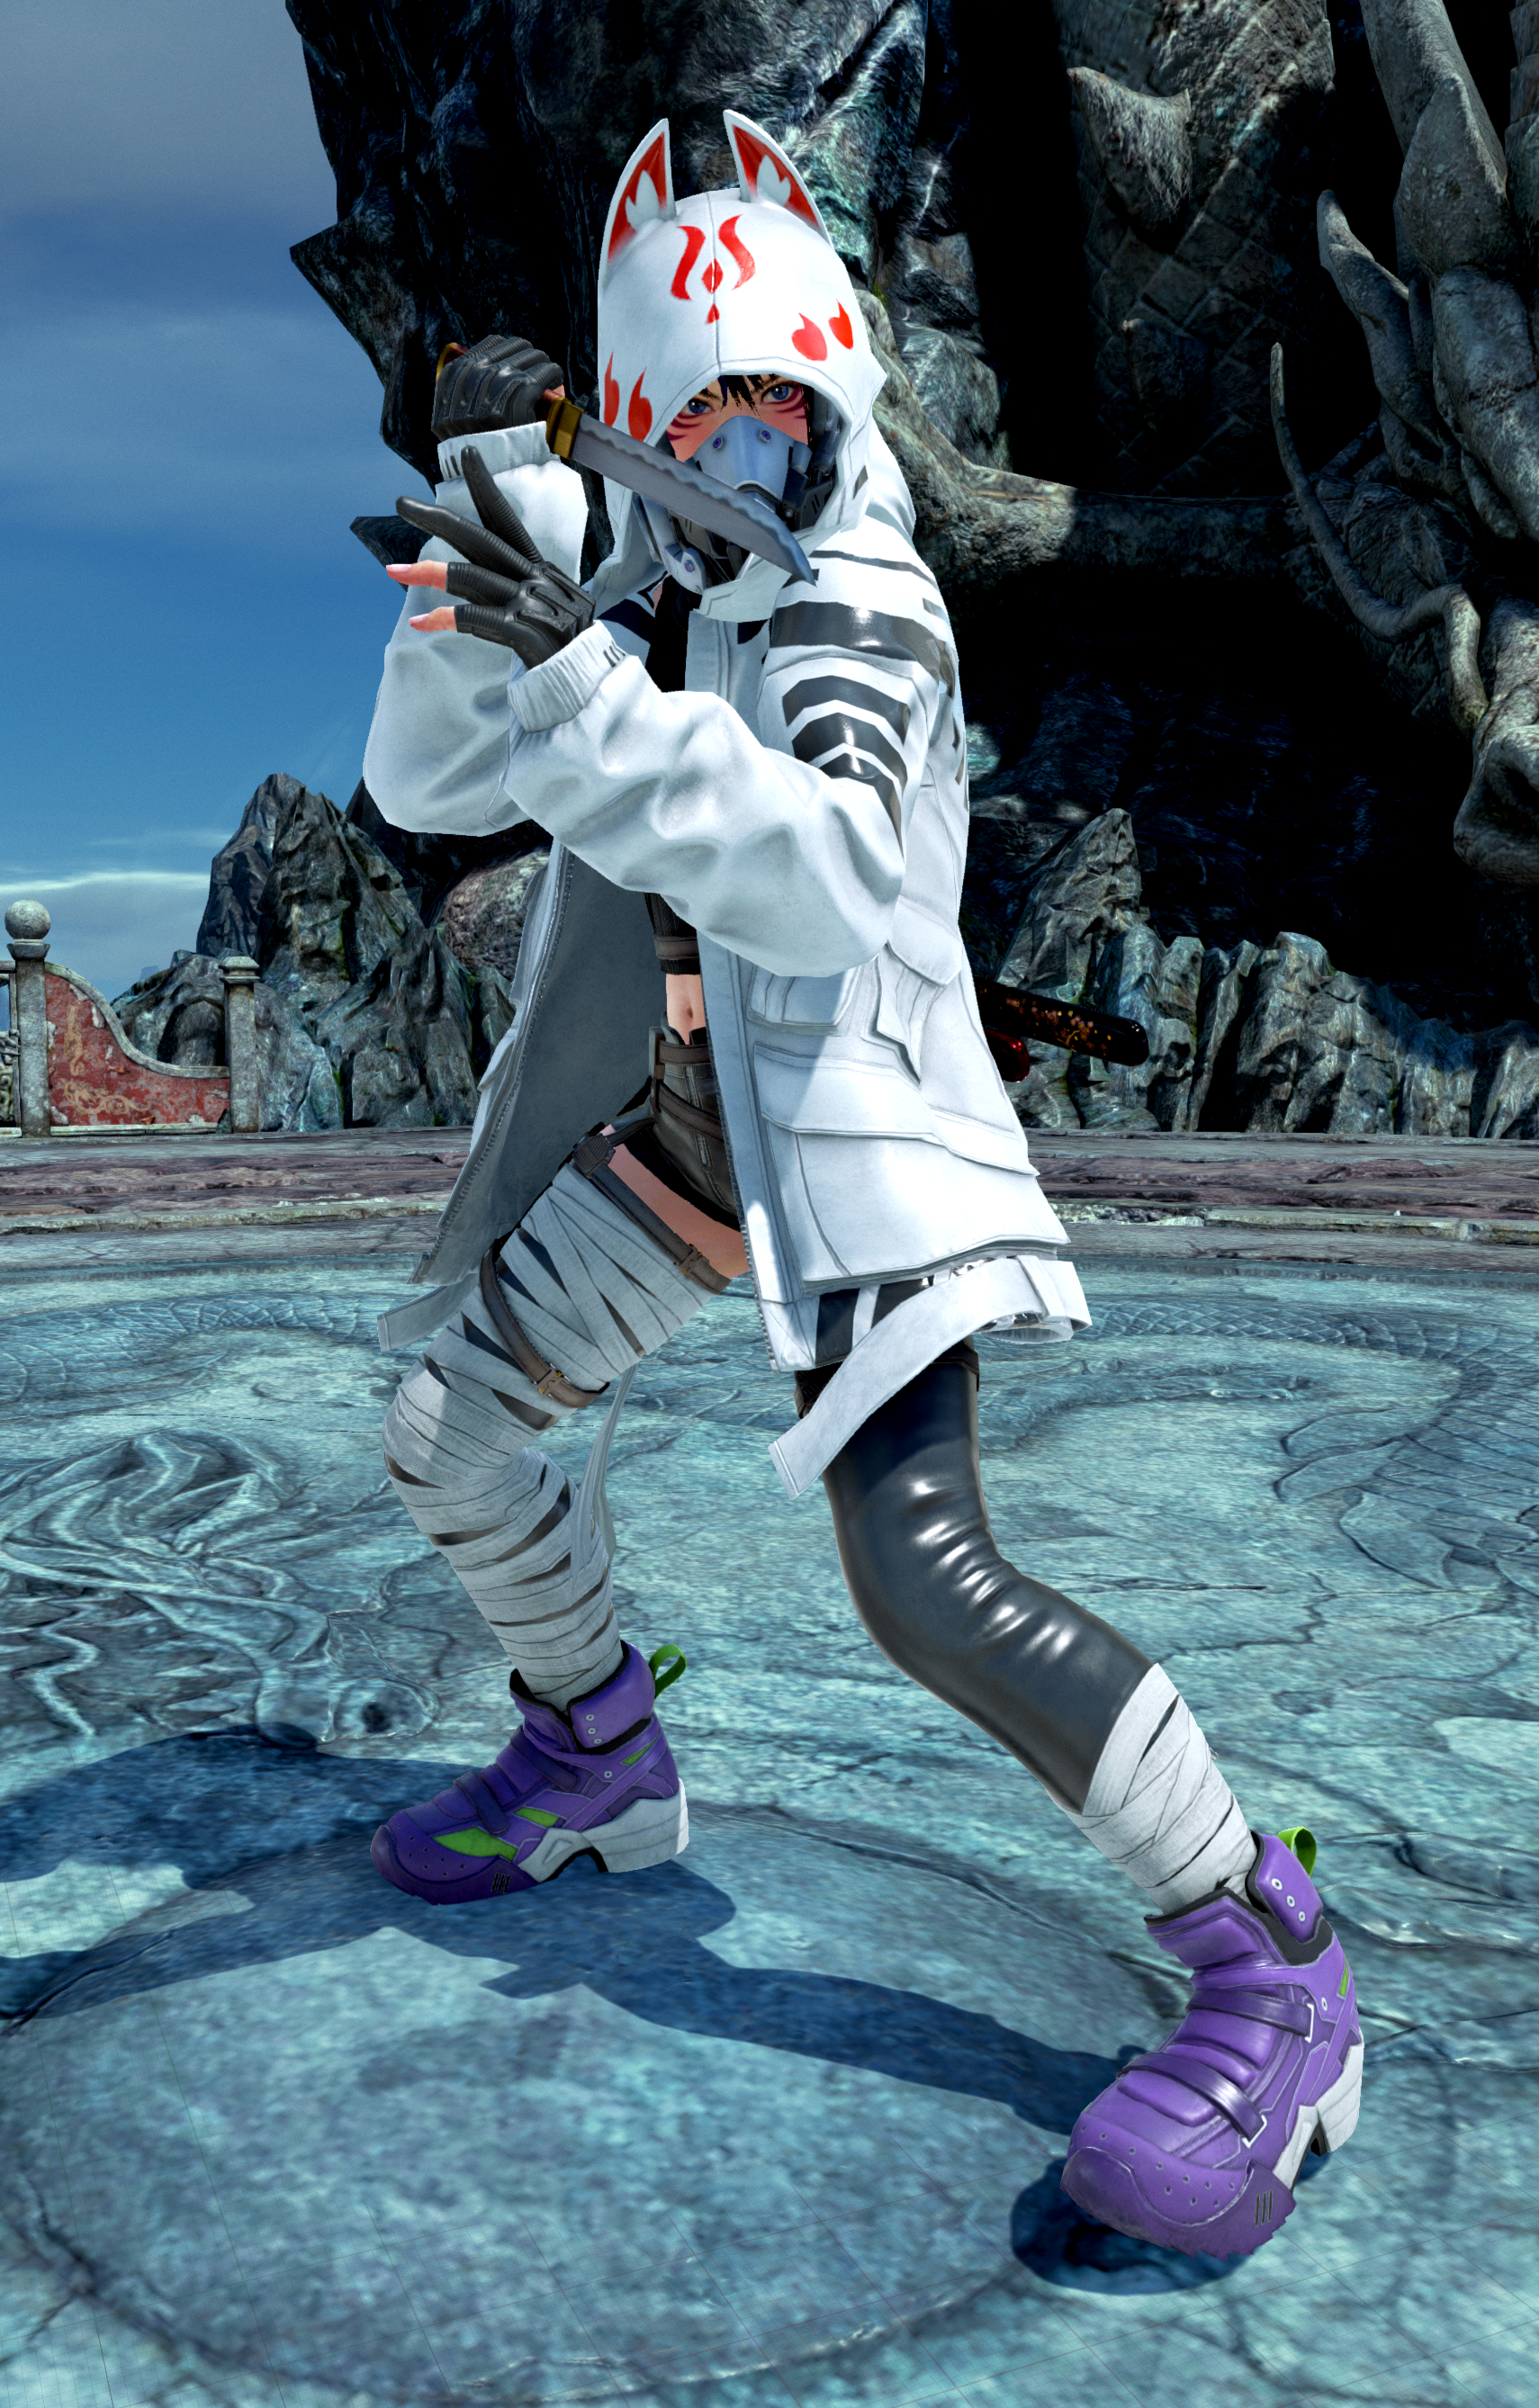 Pictures of Kunimitsu and Vermilion Gates' stage are coming to Tekken 7 4/13